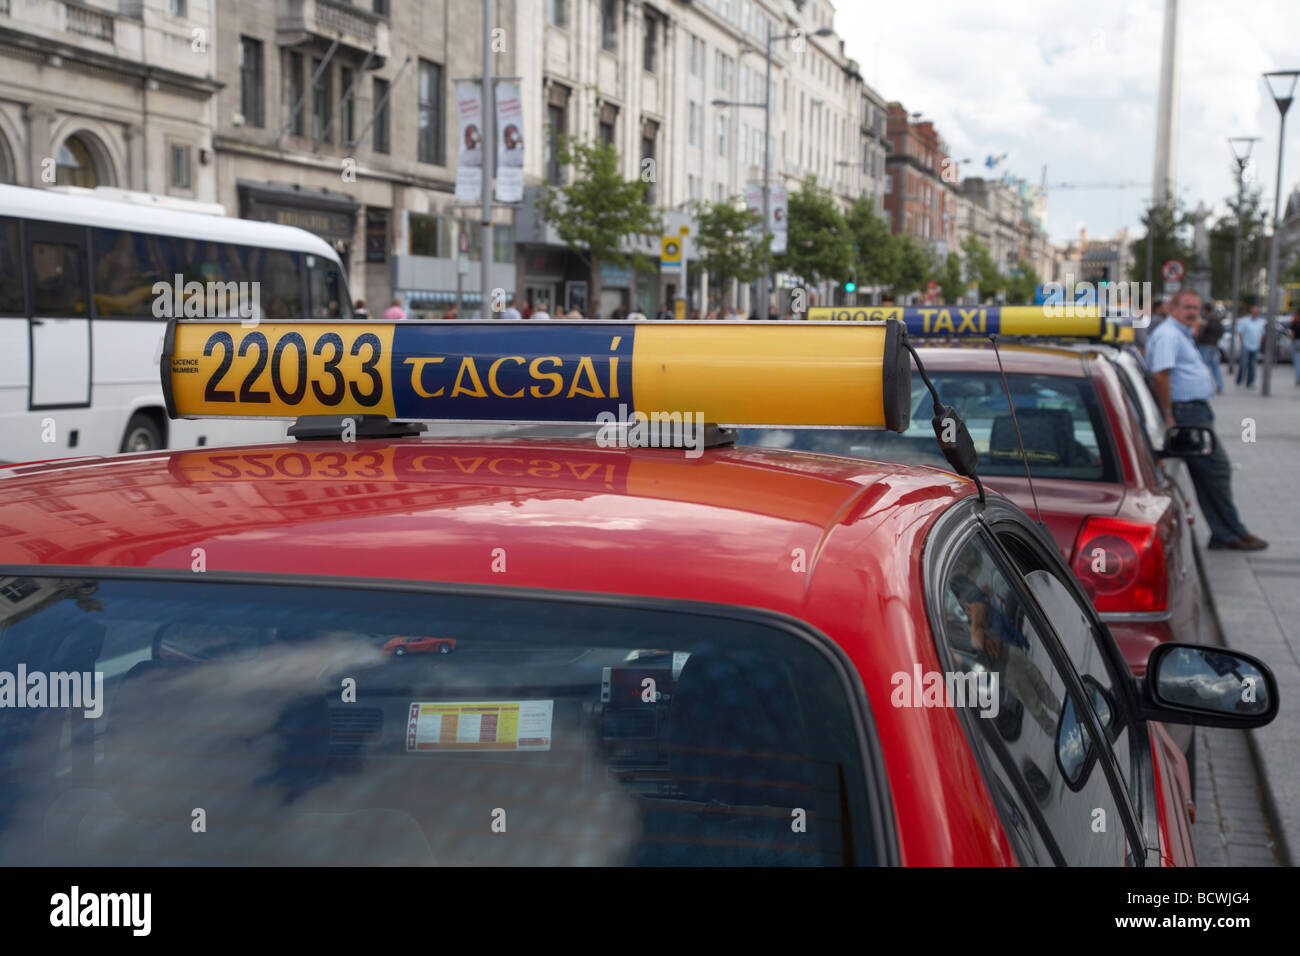 taxi with irish spelling tacsai on for hire board in a taxi rank in oconnell street dublin city centre republic Stock Photo